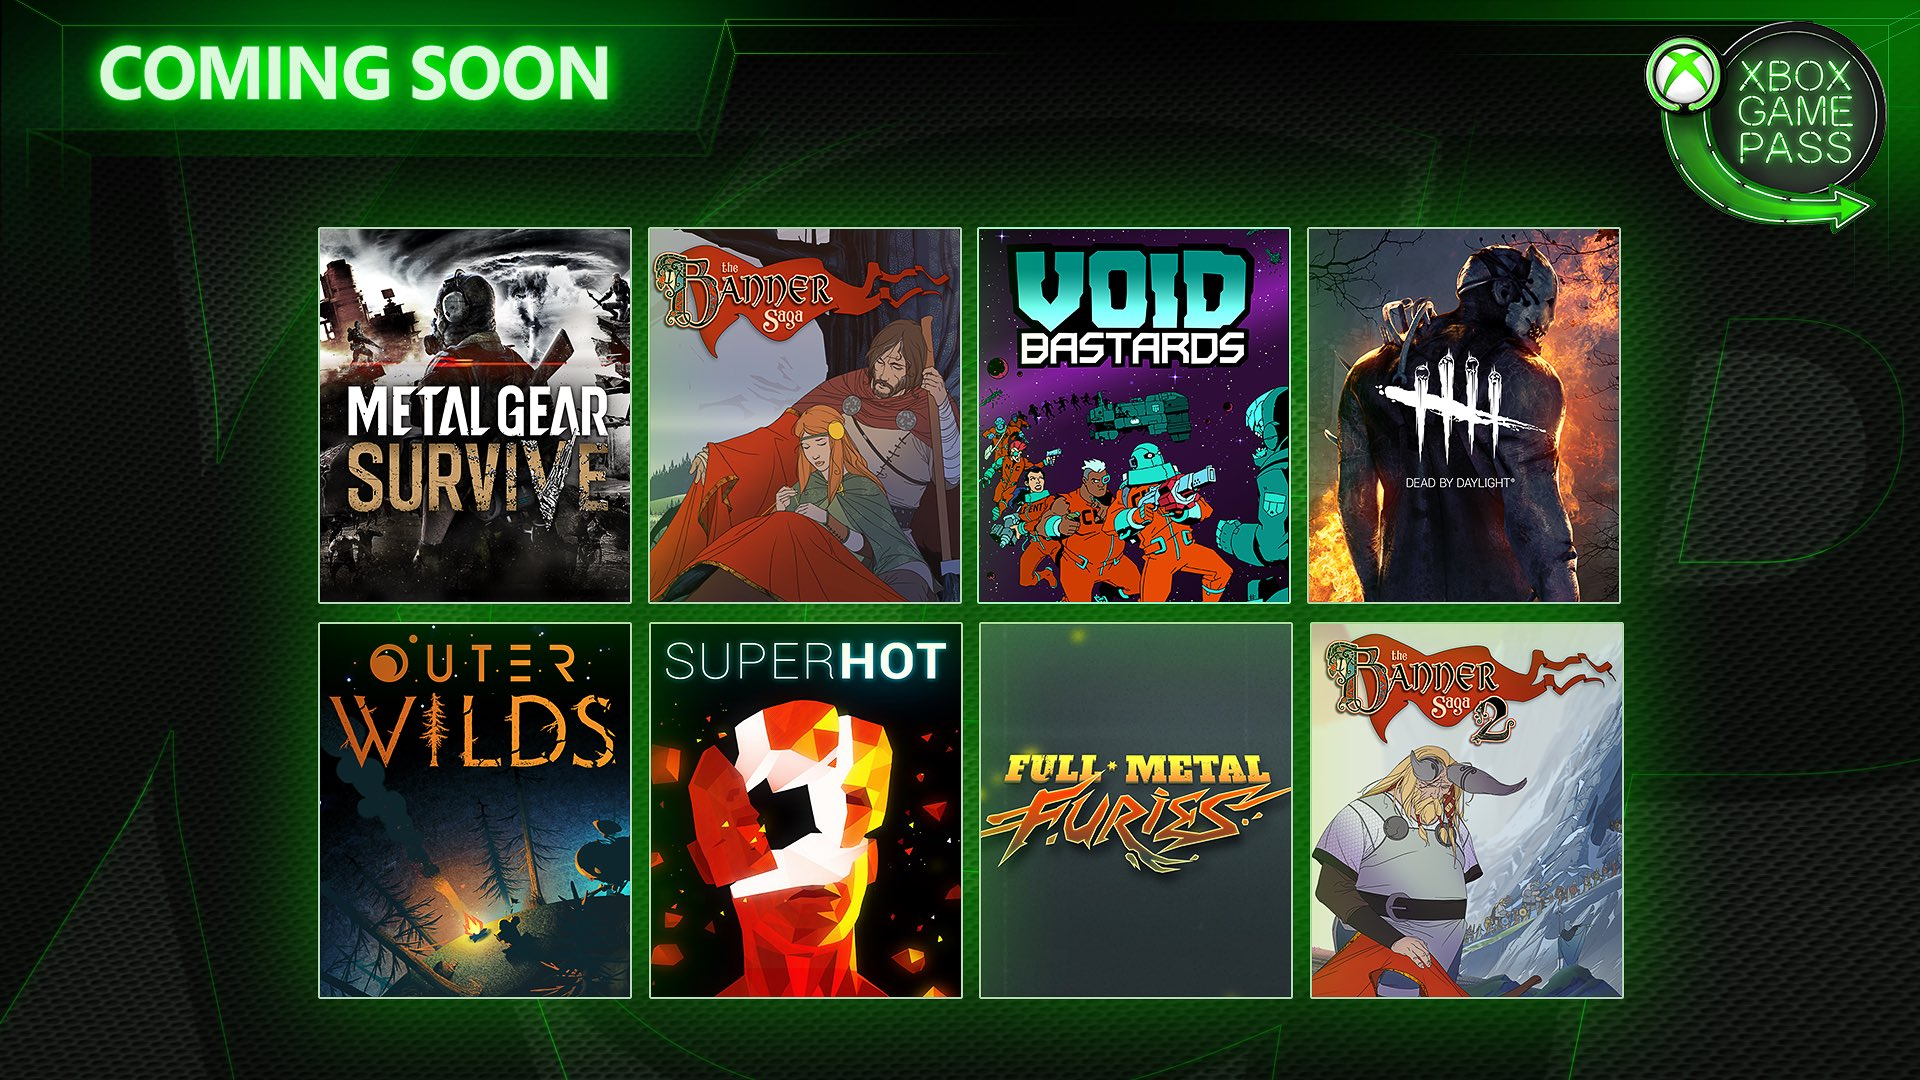 Games like The Banner Saga 2 and Superhot will be available via Xbox Game Pass this June! © Microsoft